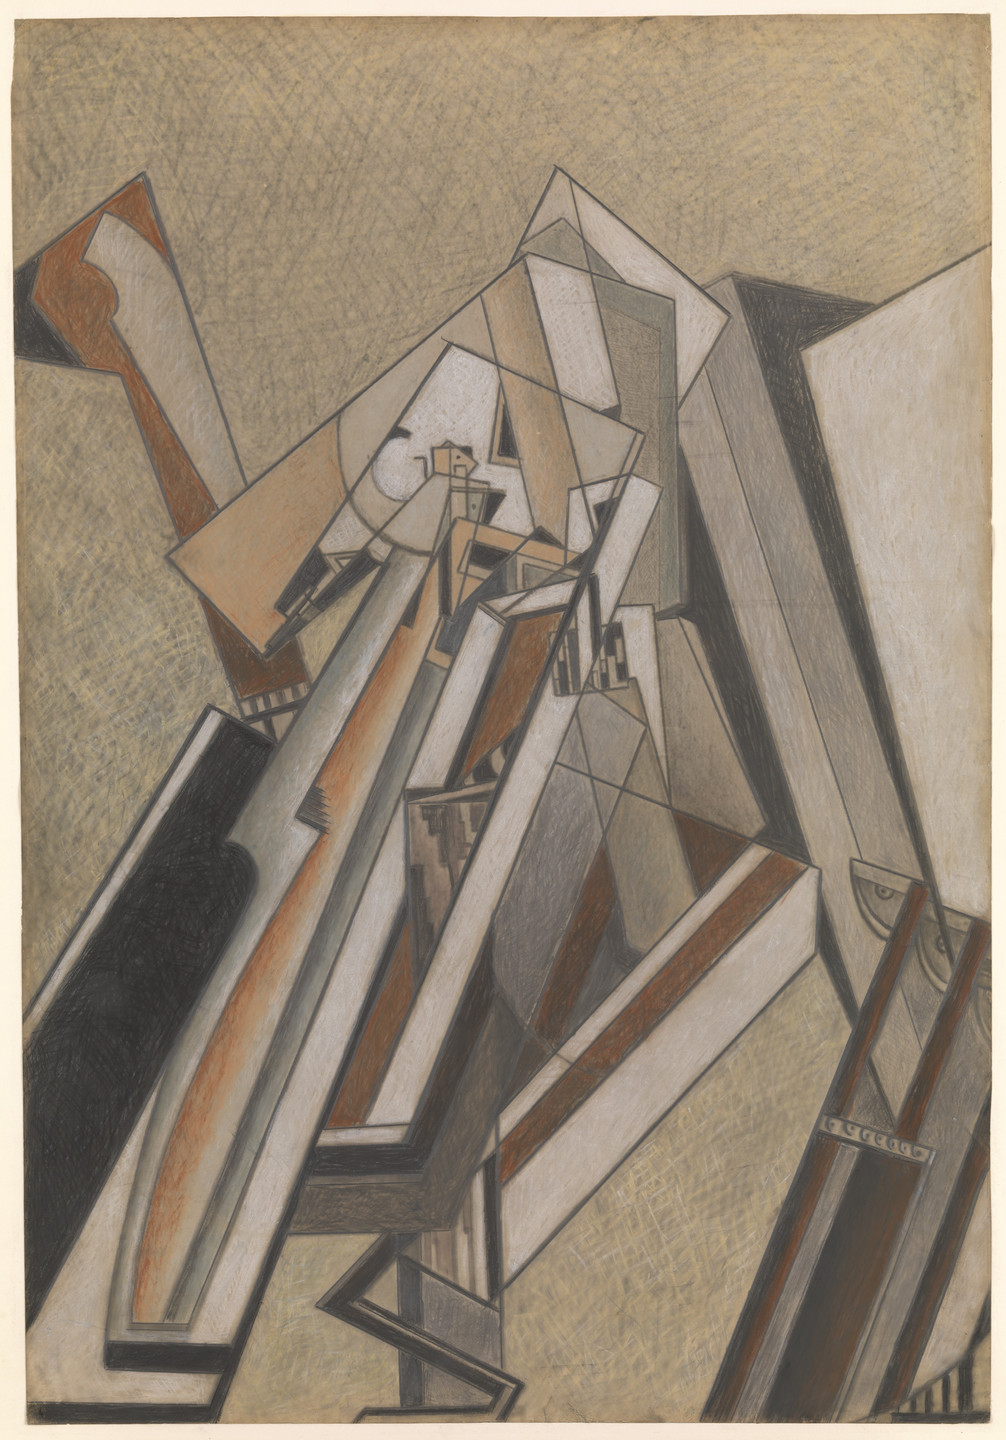 Lawrence Atkinson. Abstract Composition. c. 1914